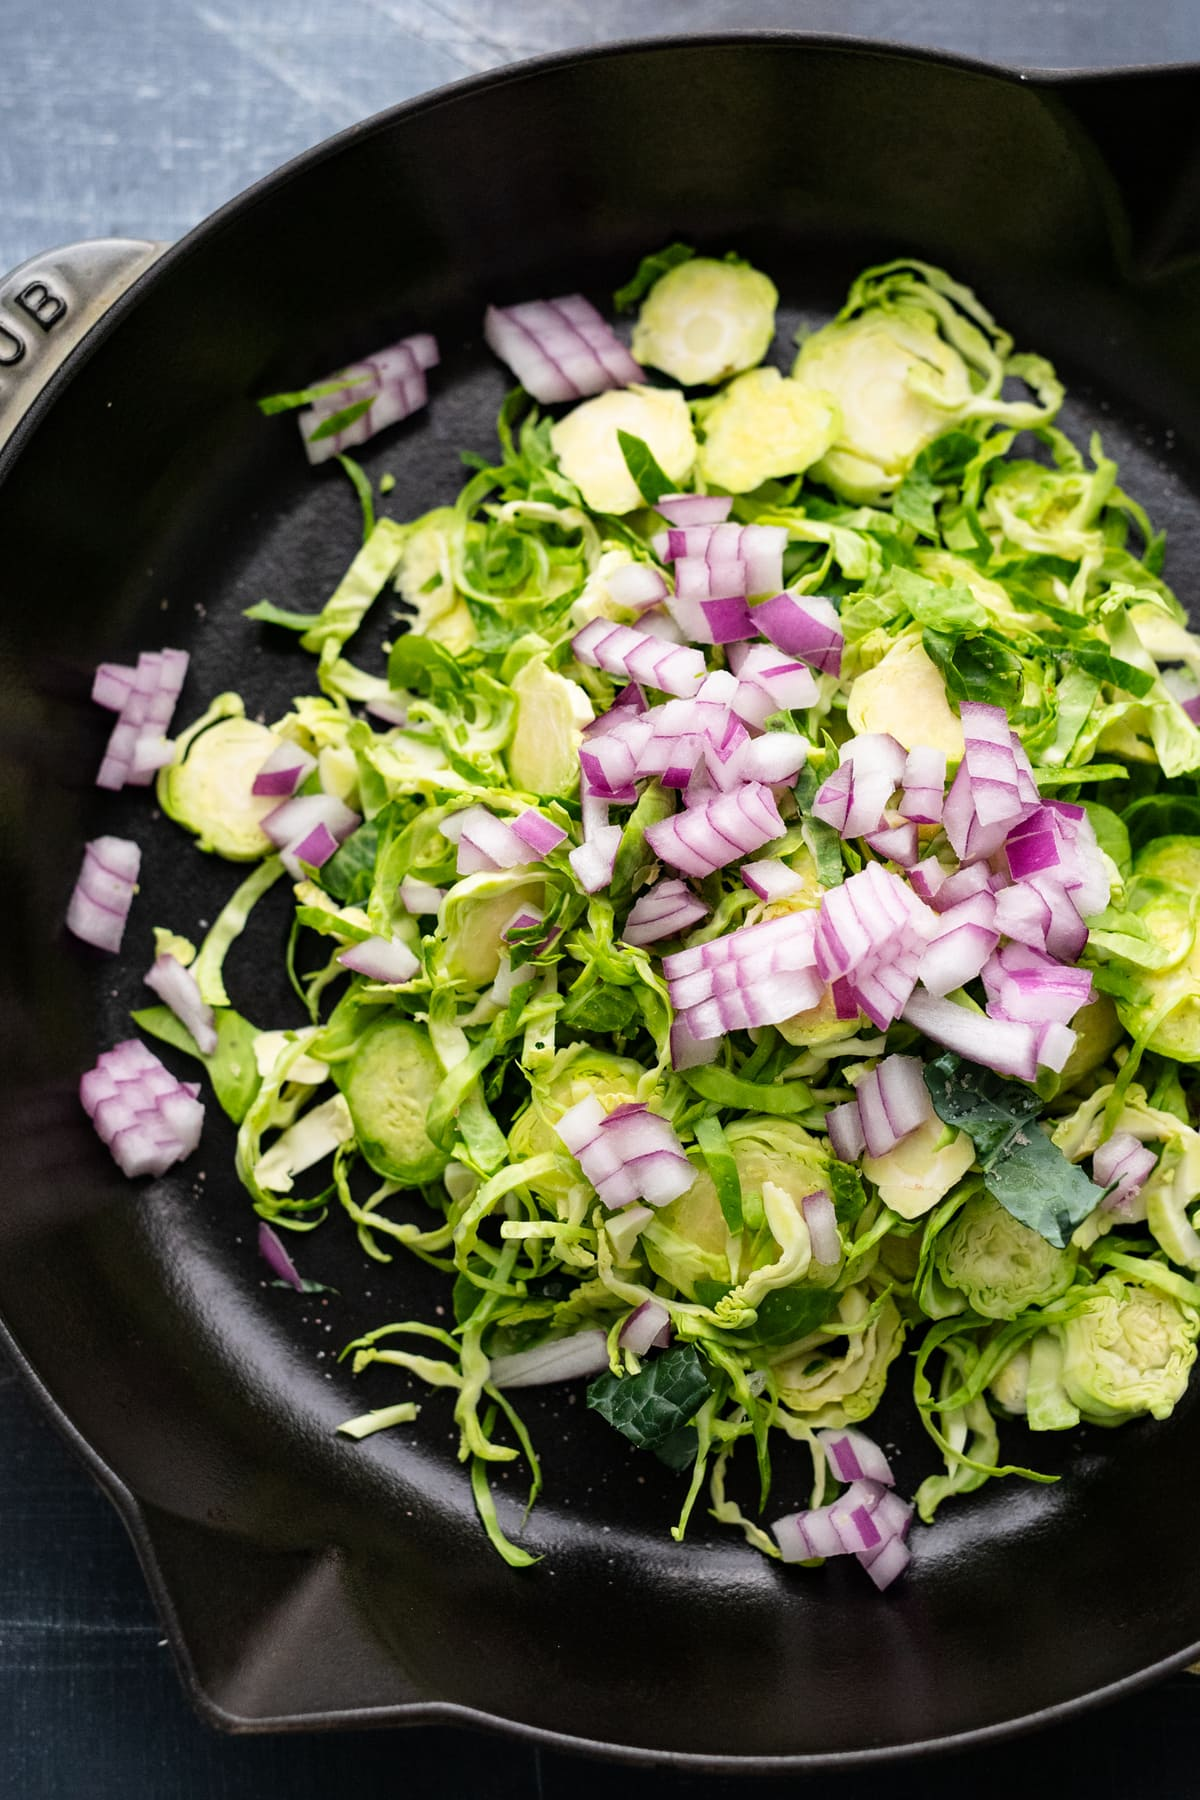 A cast iron pan with shredded brussel sprouts and diced red onion in it.